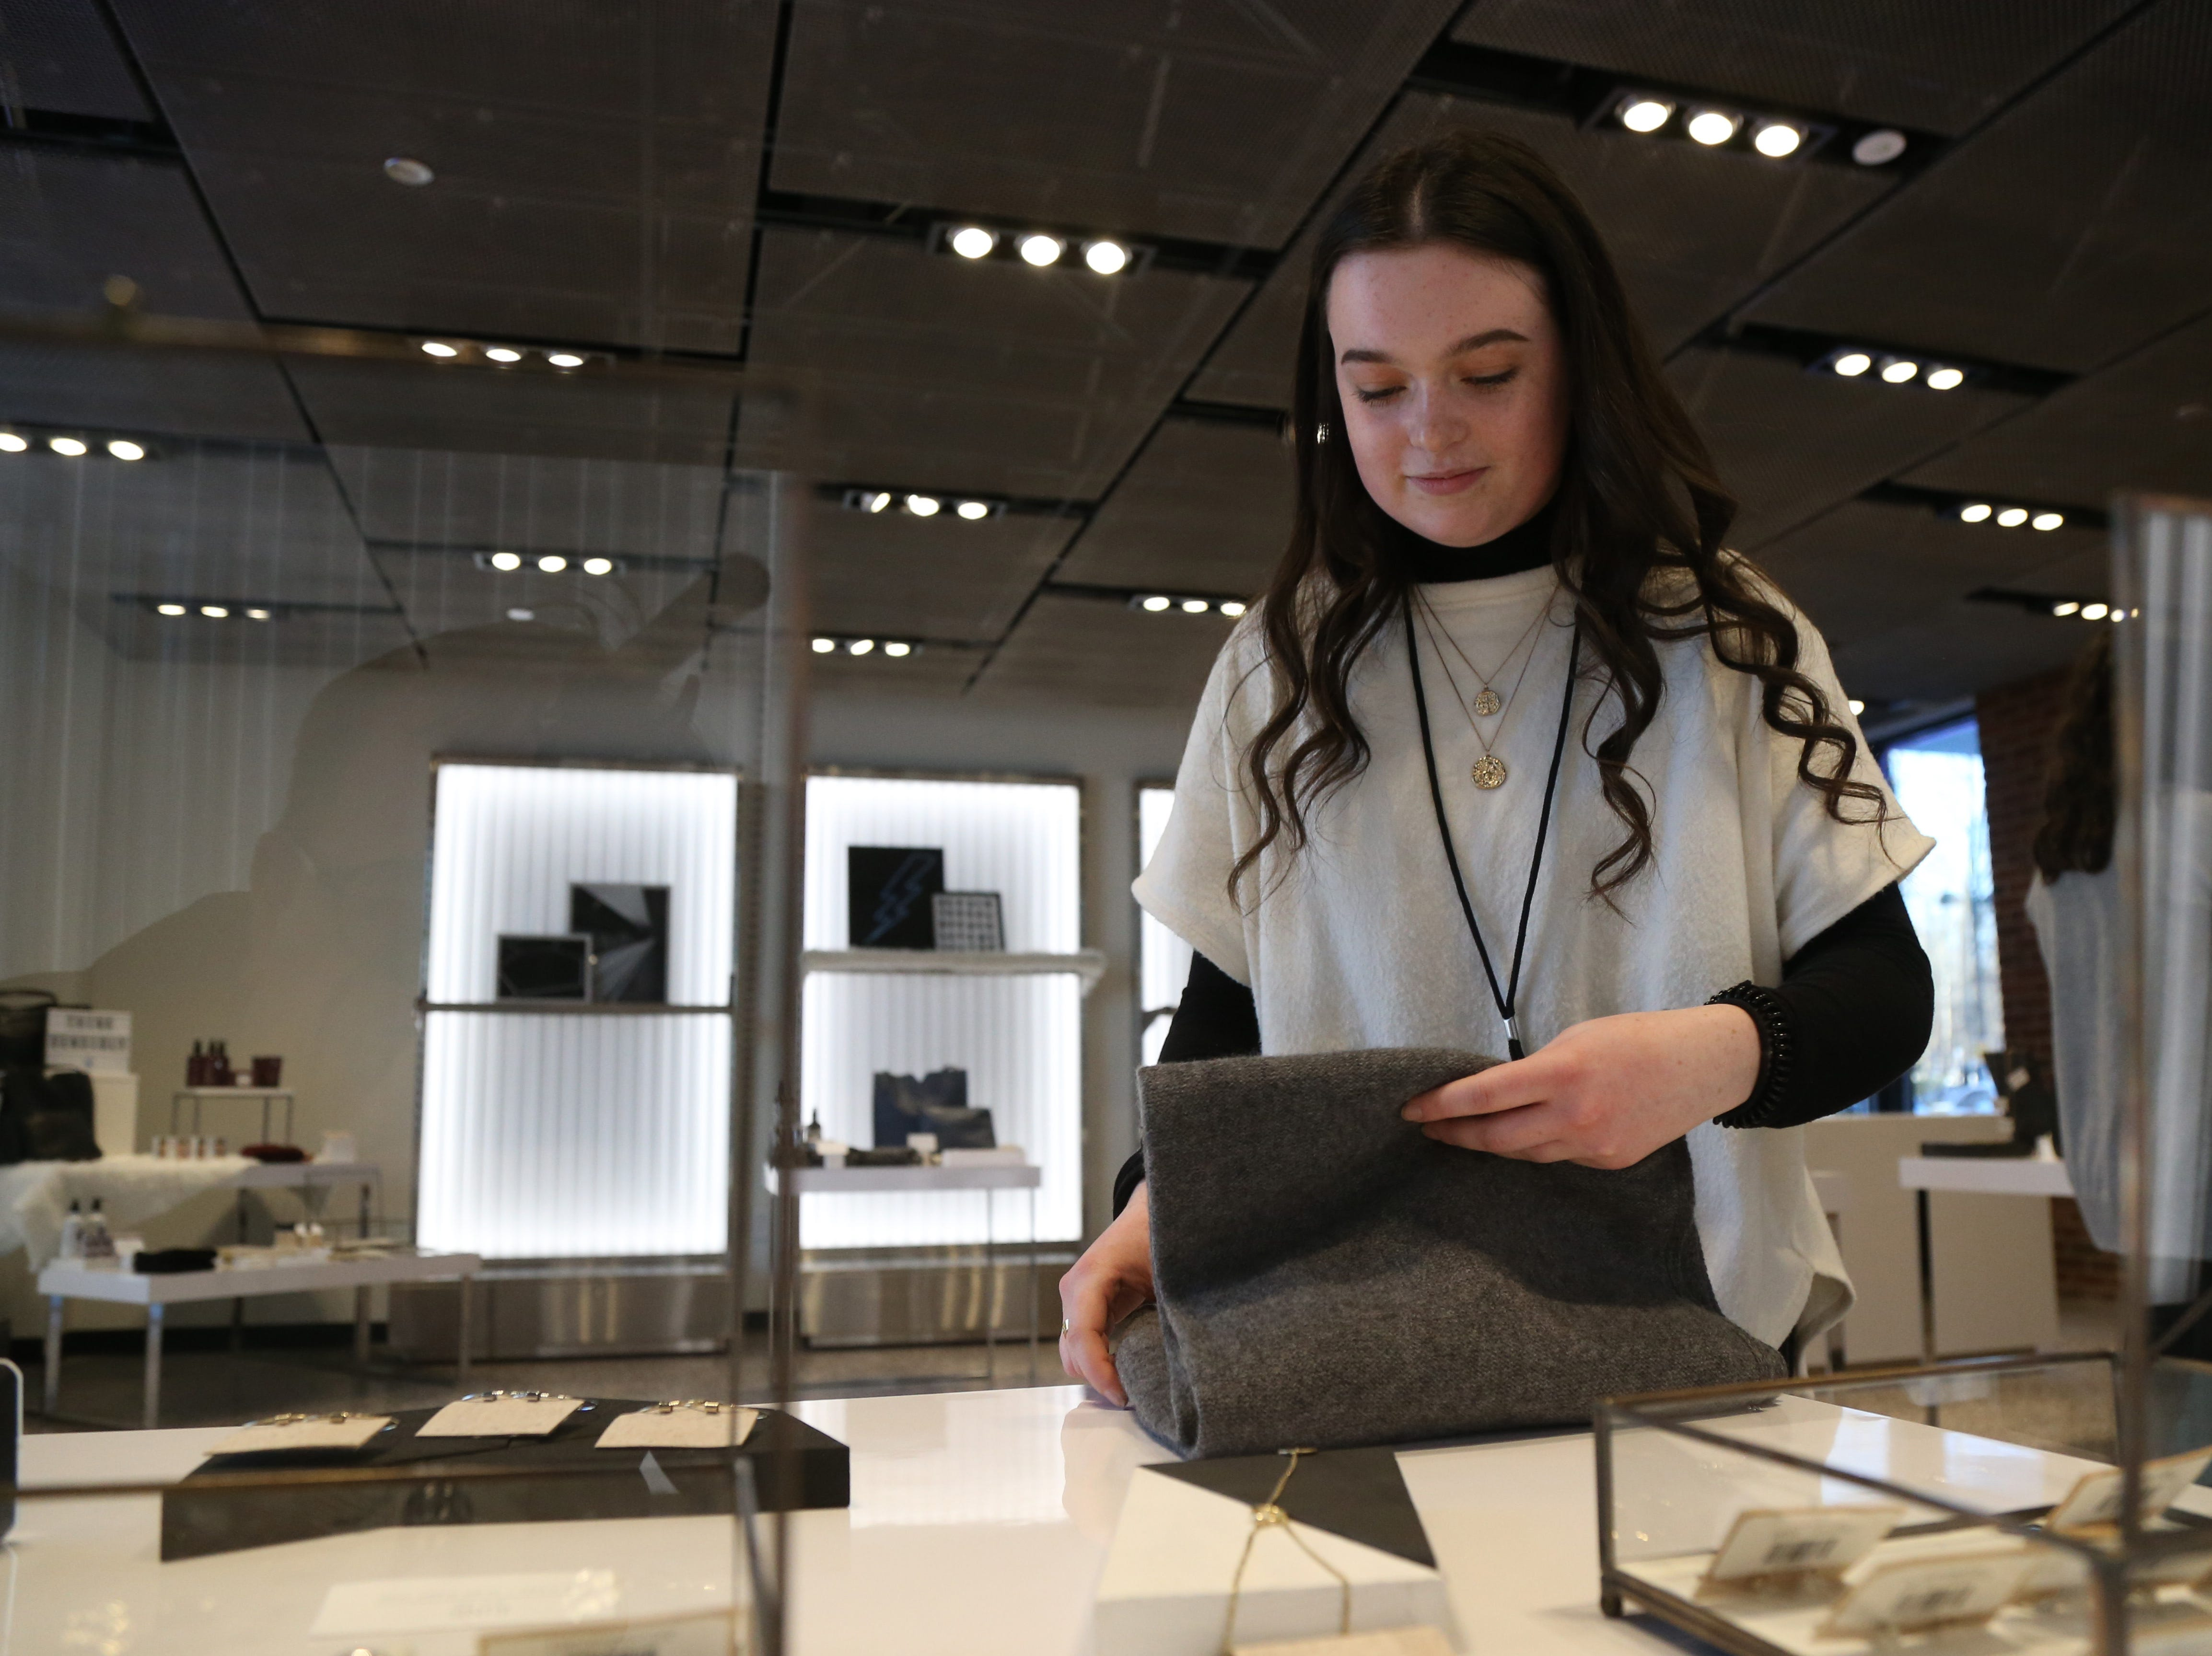 Marist student, Lea Sciancalepore of Albany checks over products for sale at the Mporium, a boutique at Marist College's Steel Plant Studios in Poughkeepsie on February 1, 2019.